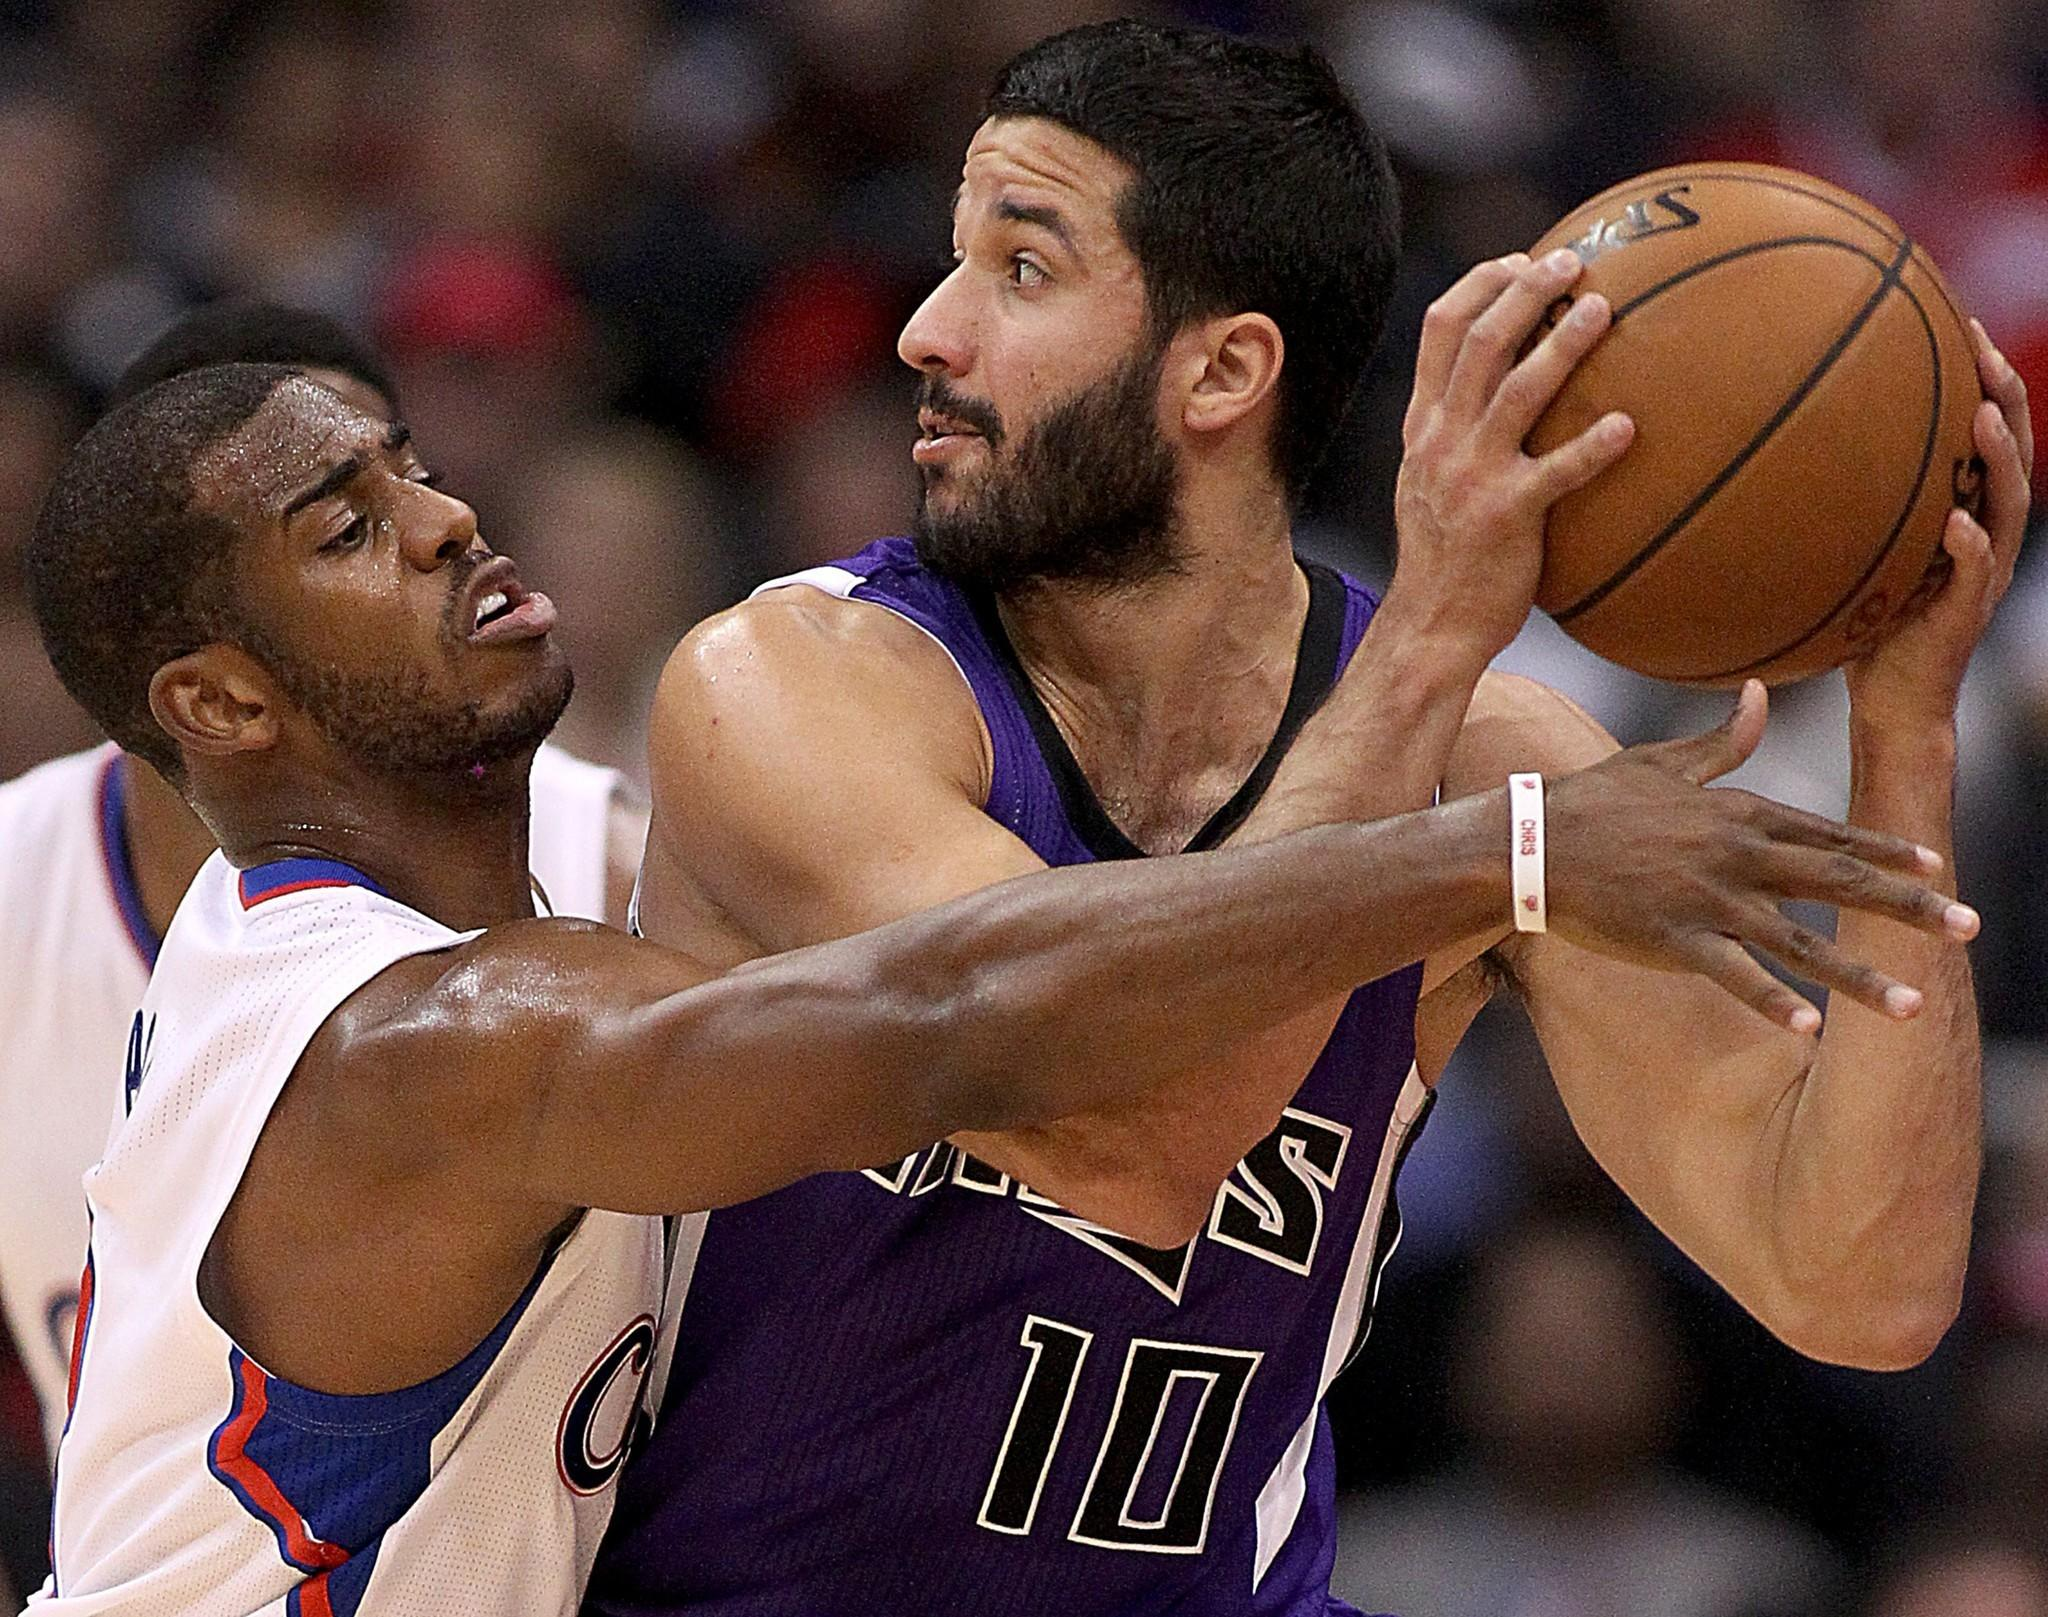 Clippers point guard Chris Paul tries to steal the ball from Kings guard Greivis Vasquez during a game earlier this season.